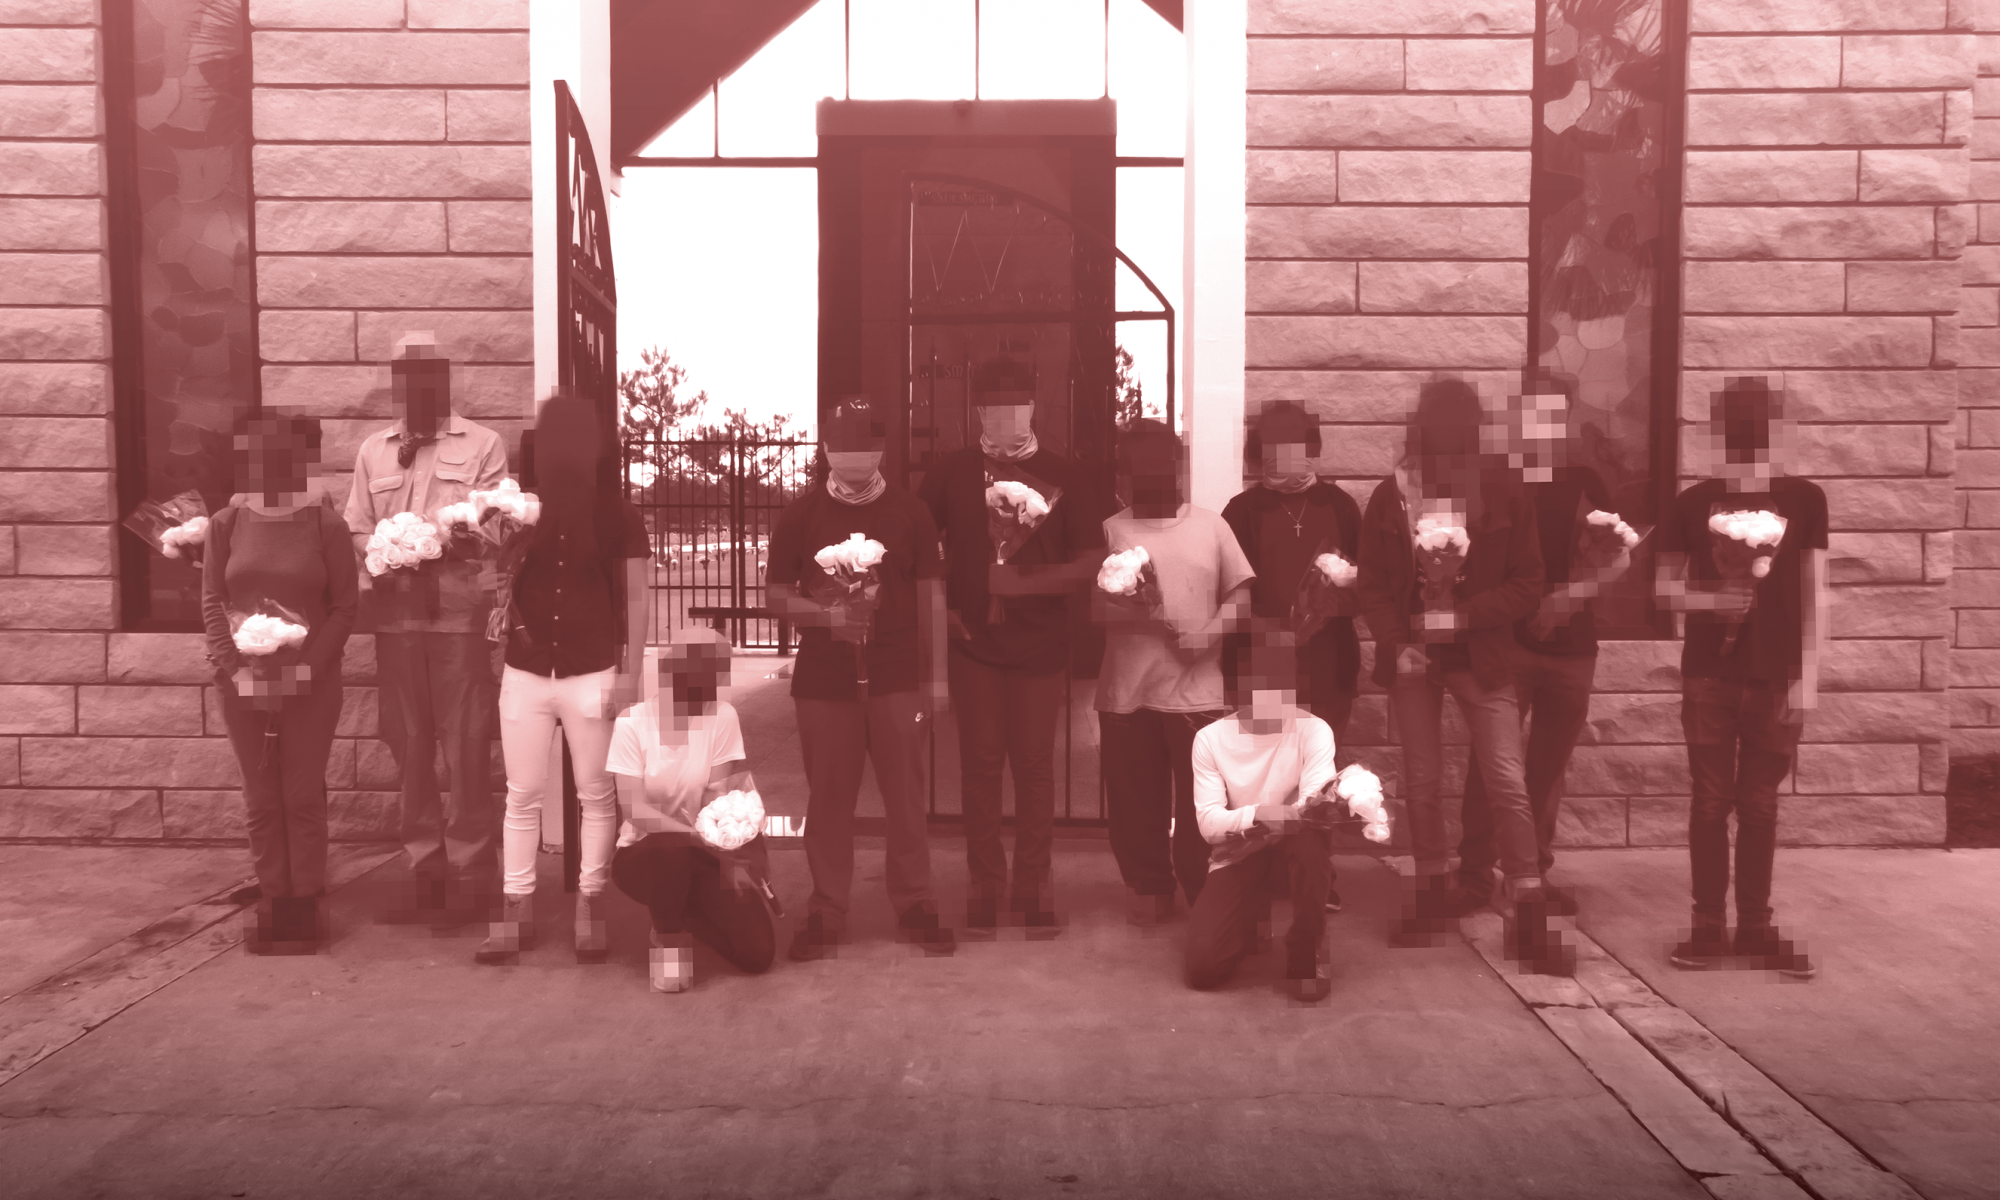 A group photo of people holding floyers in front of George Floyd's Mausoleum.